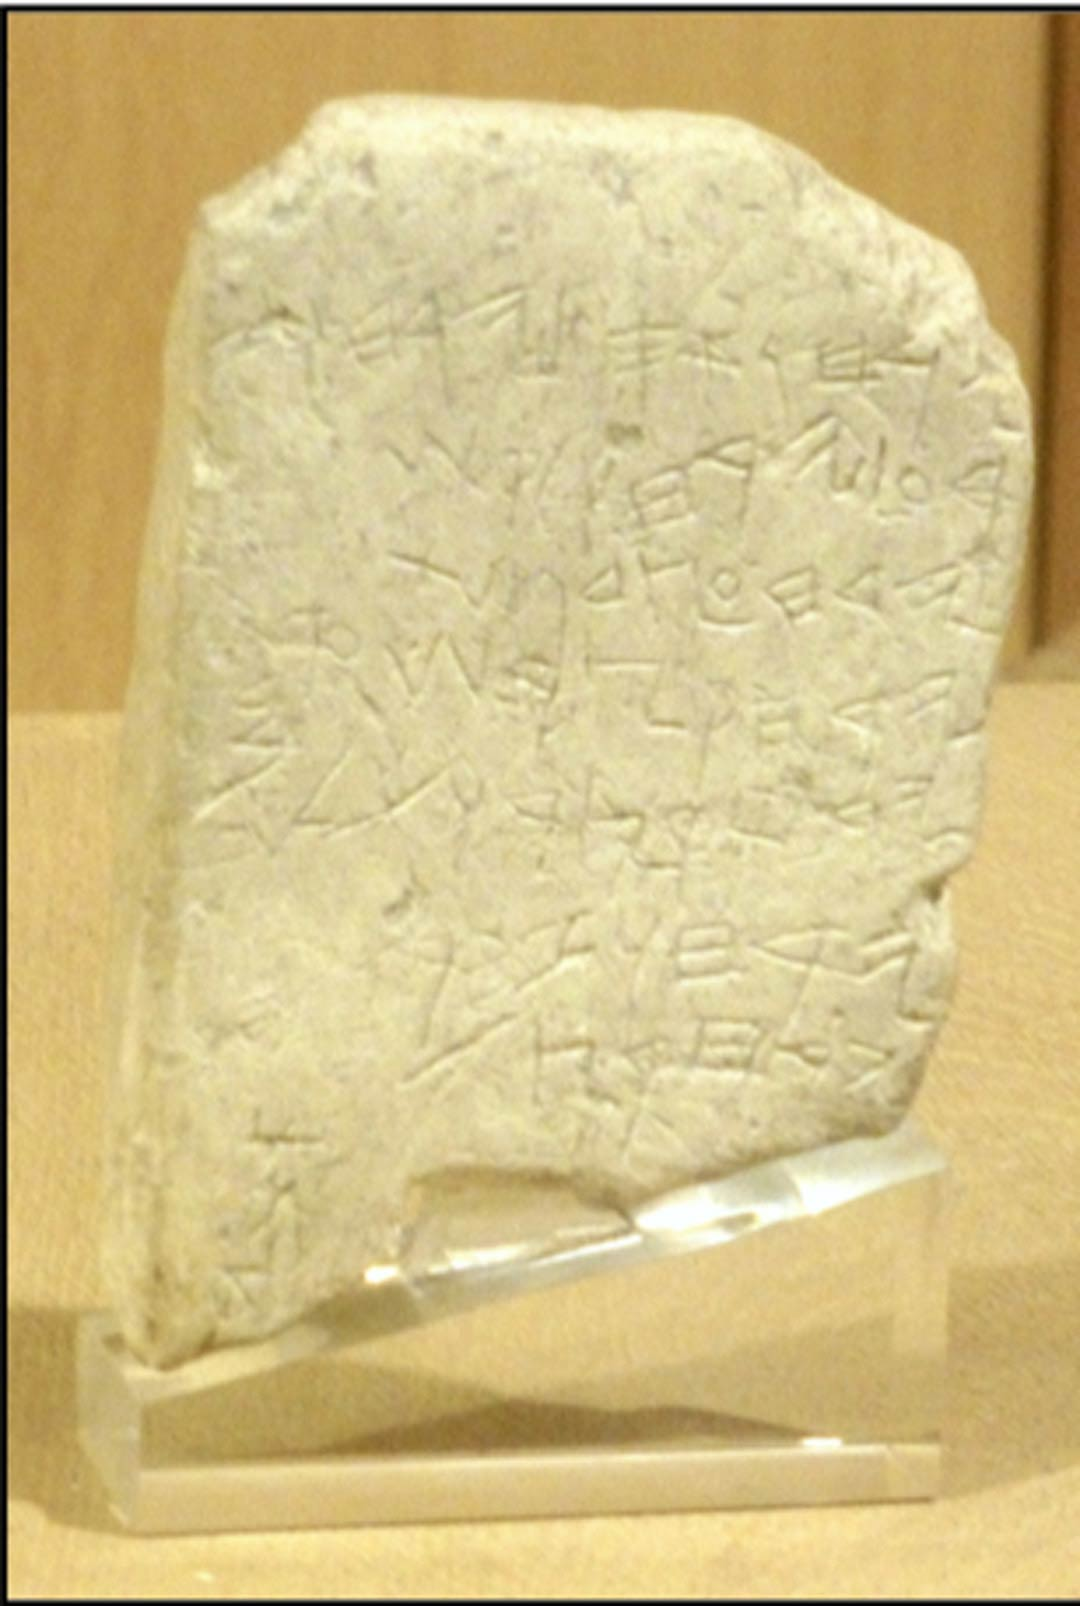 Gezer calendar displayed at the Istanbul Archaeological Museum